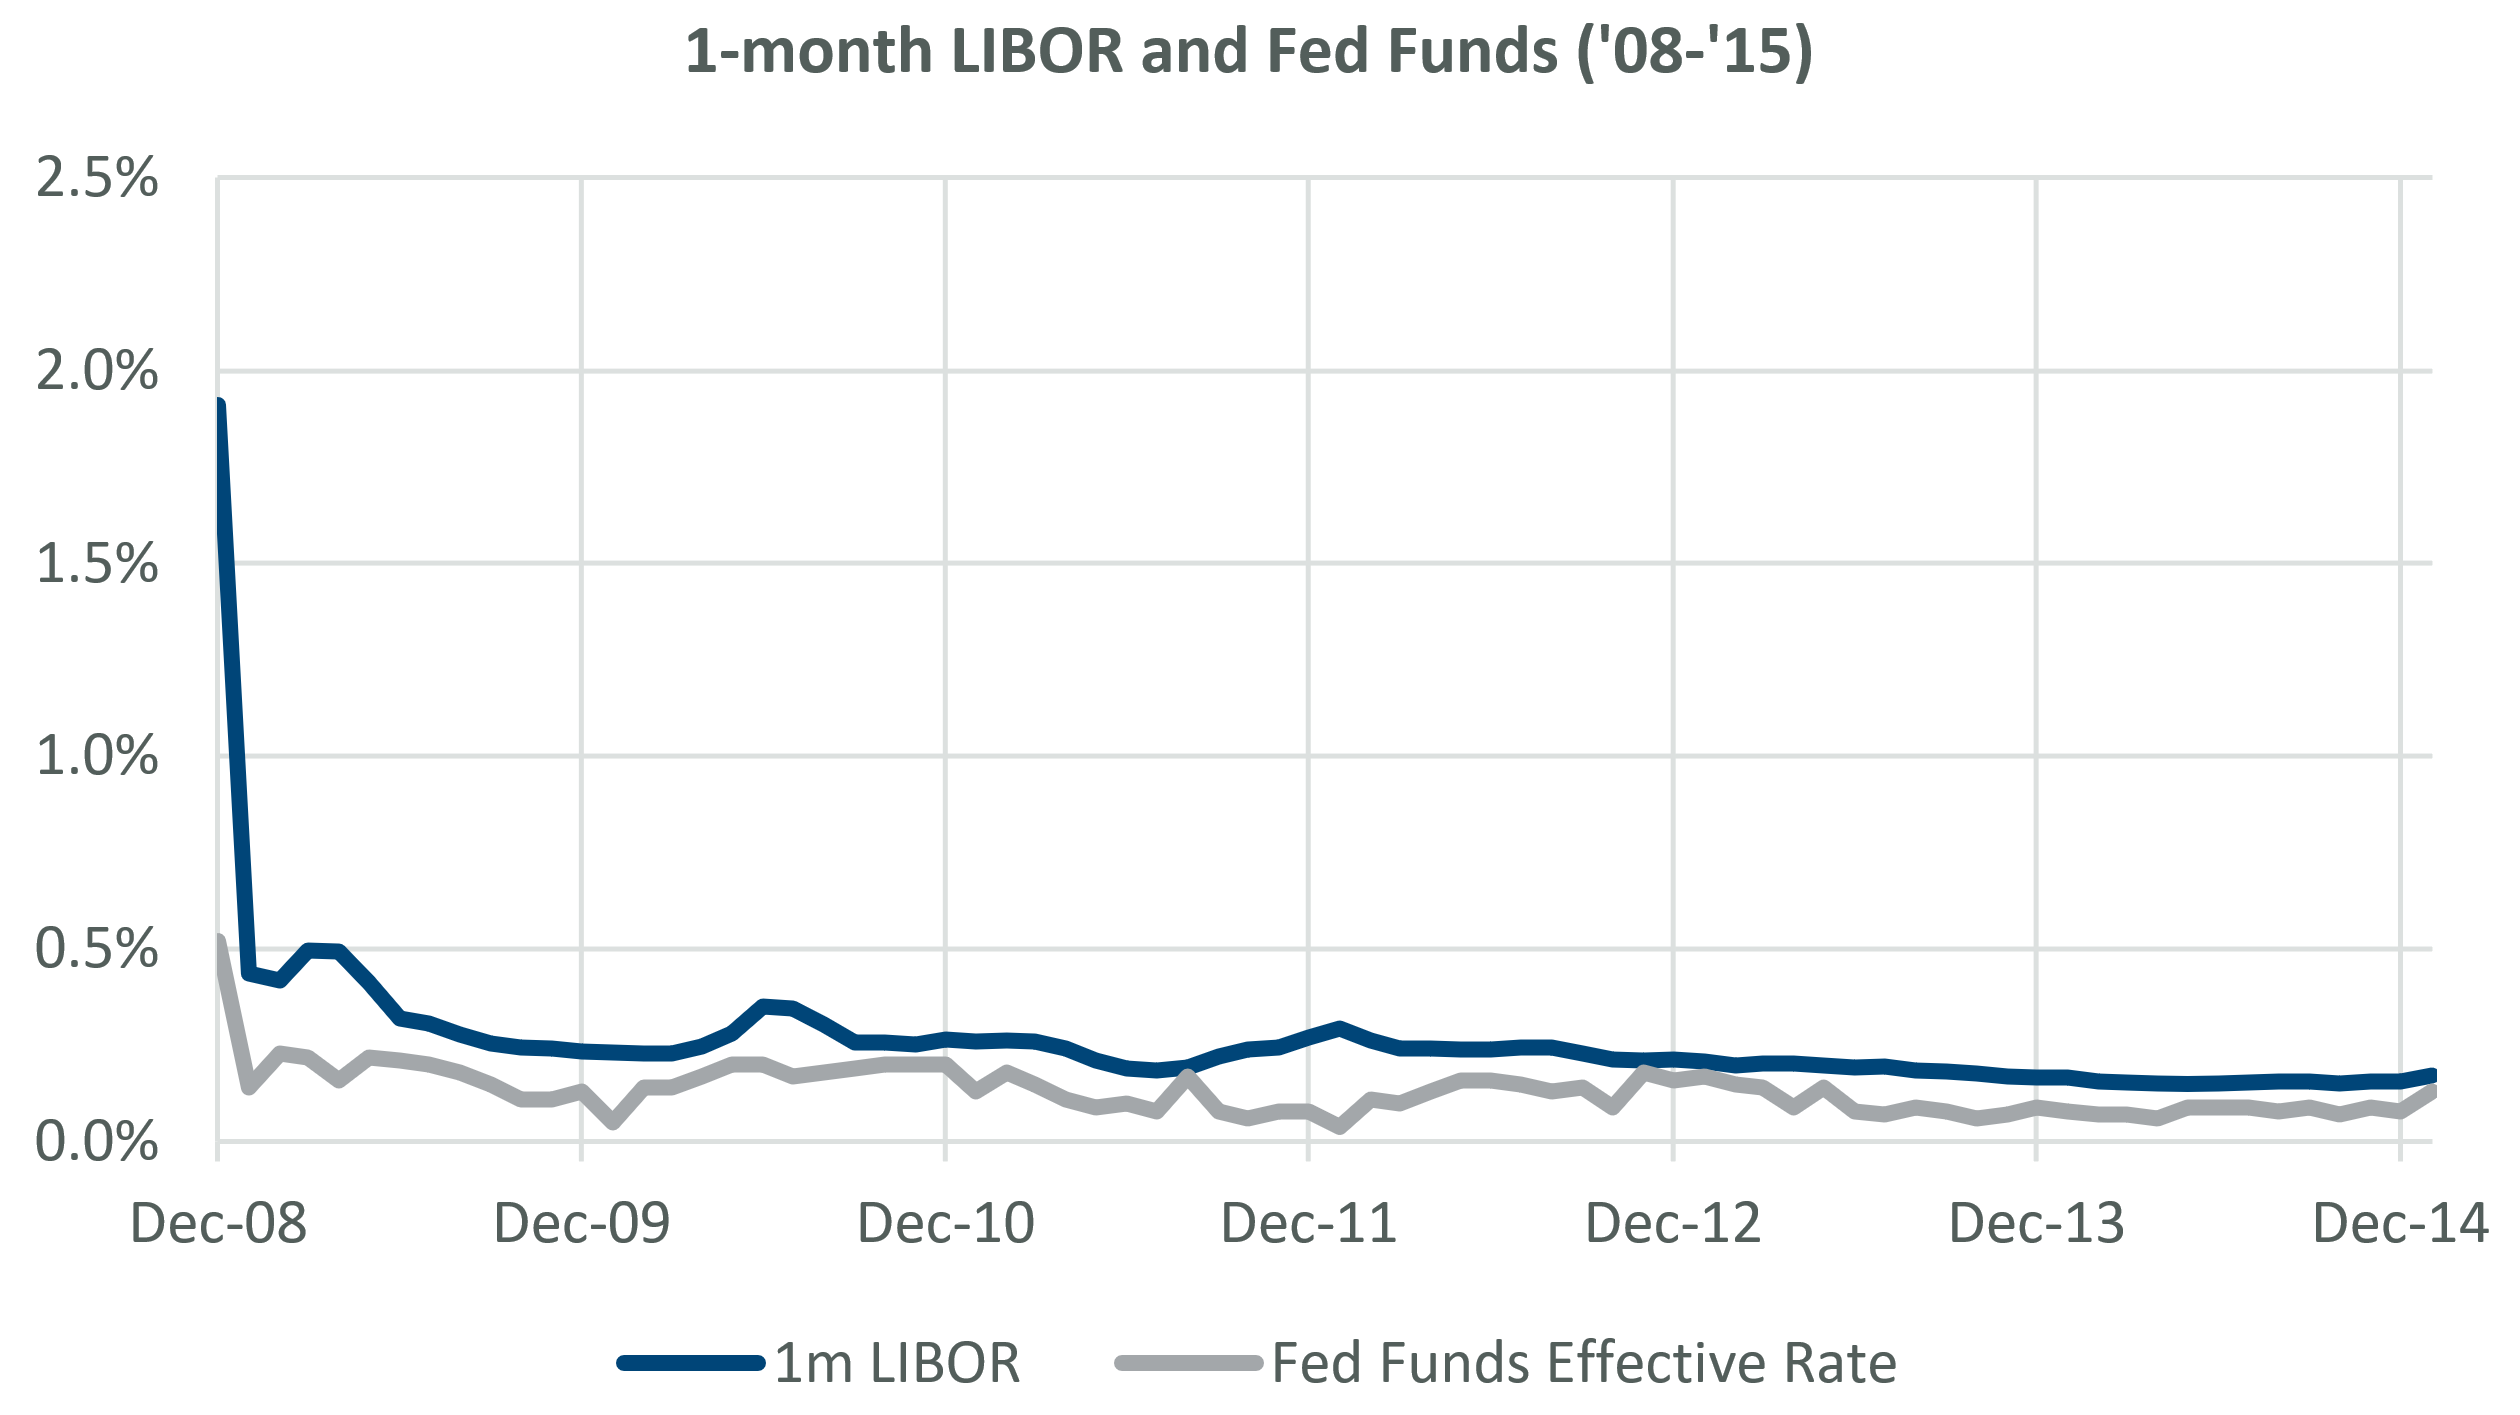 1-month LIBOR and Fed Funds Effective Rate, December 2008 to December 2015